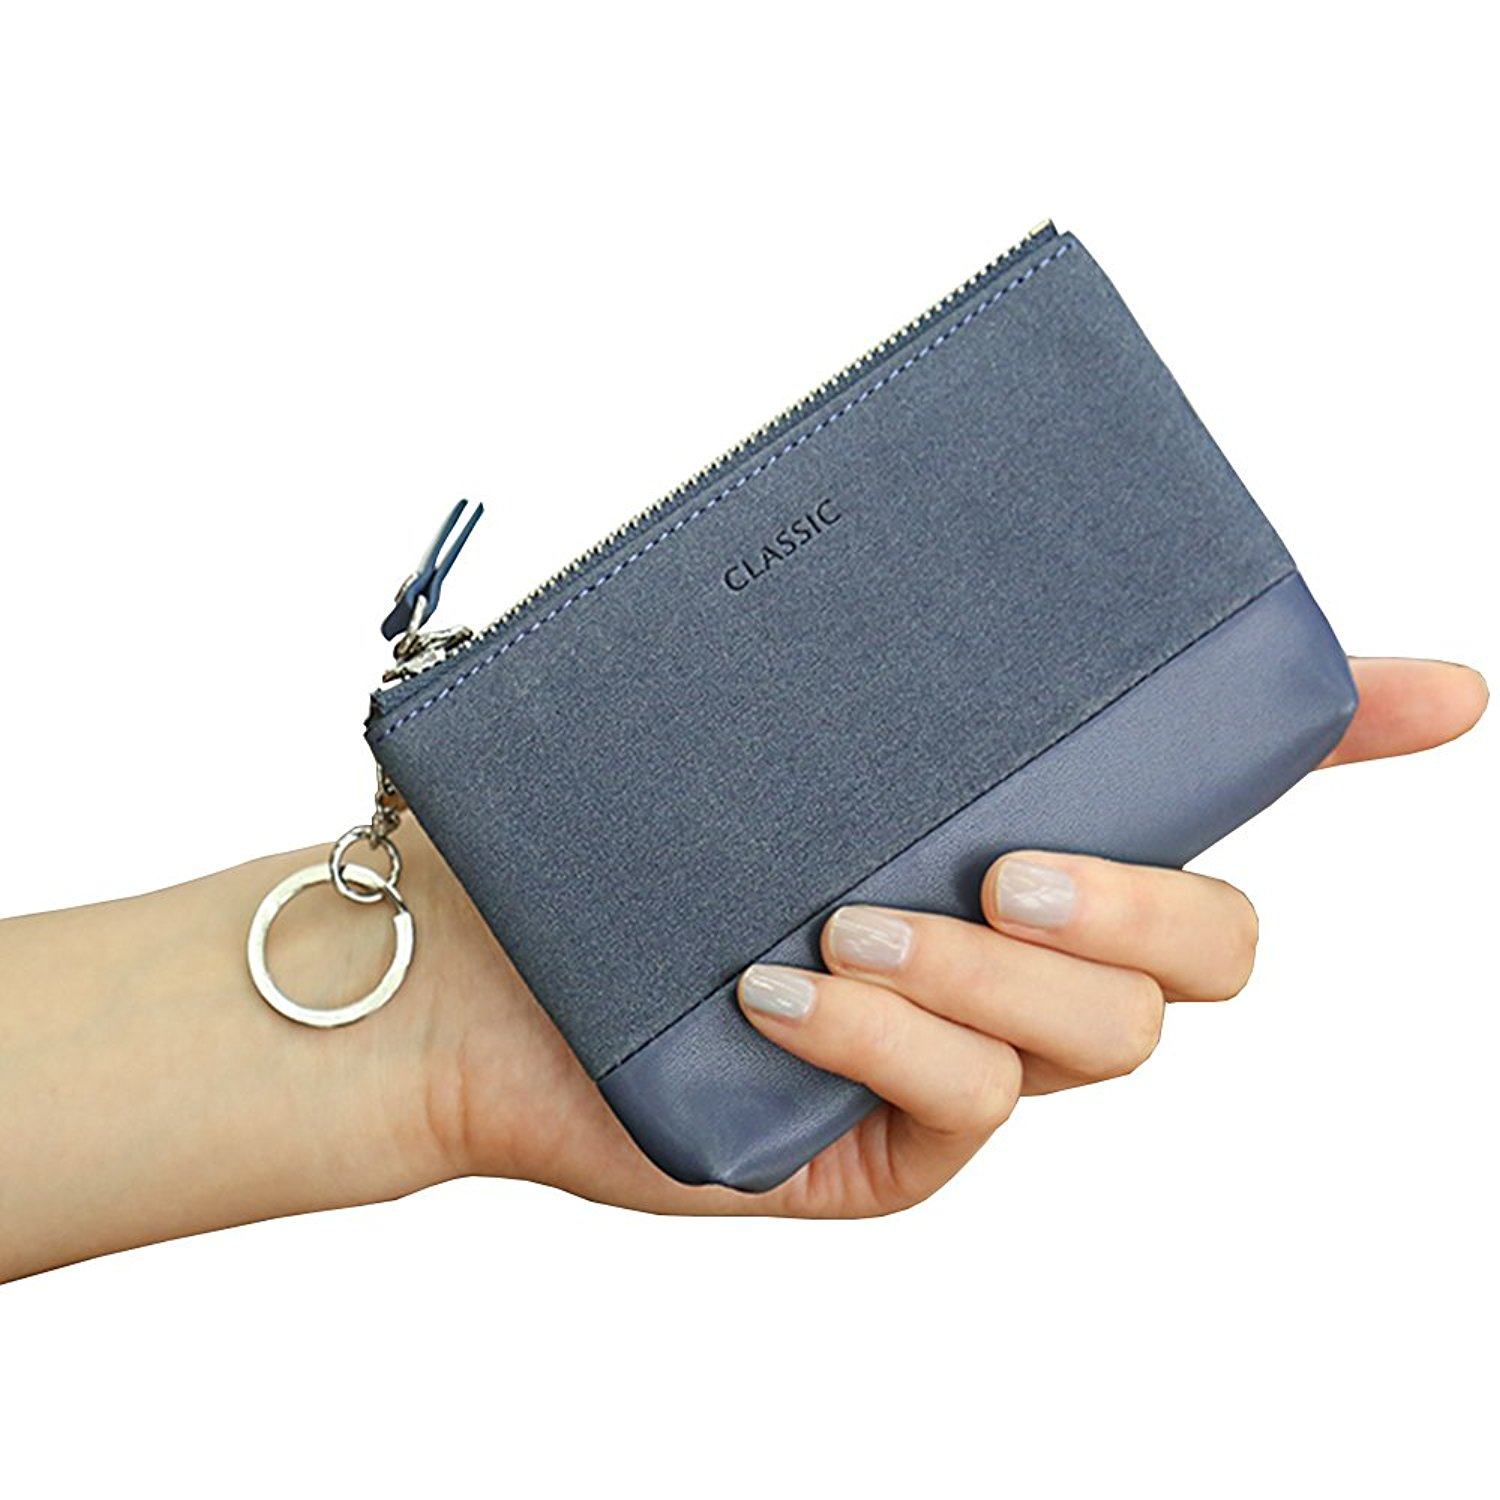 IFUNLE Womens RFID Blocking Slim Key Holder Wallet Card Holder Coin Cash Key Organizer Zipper Buckle Key Case Wallet with 4 Hooks and Key Chain/Ring